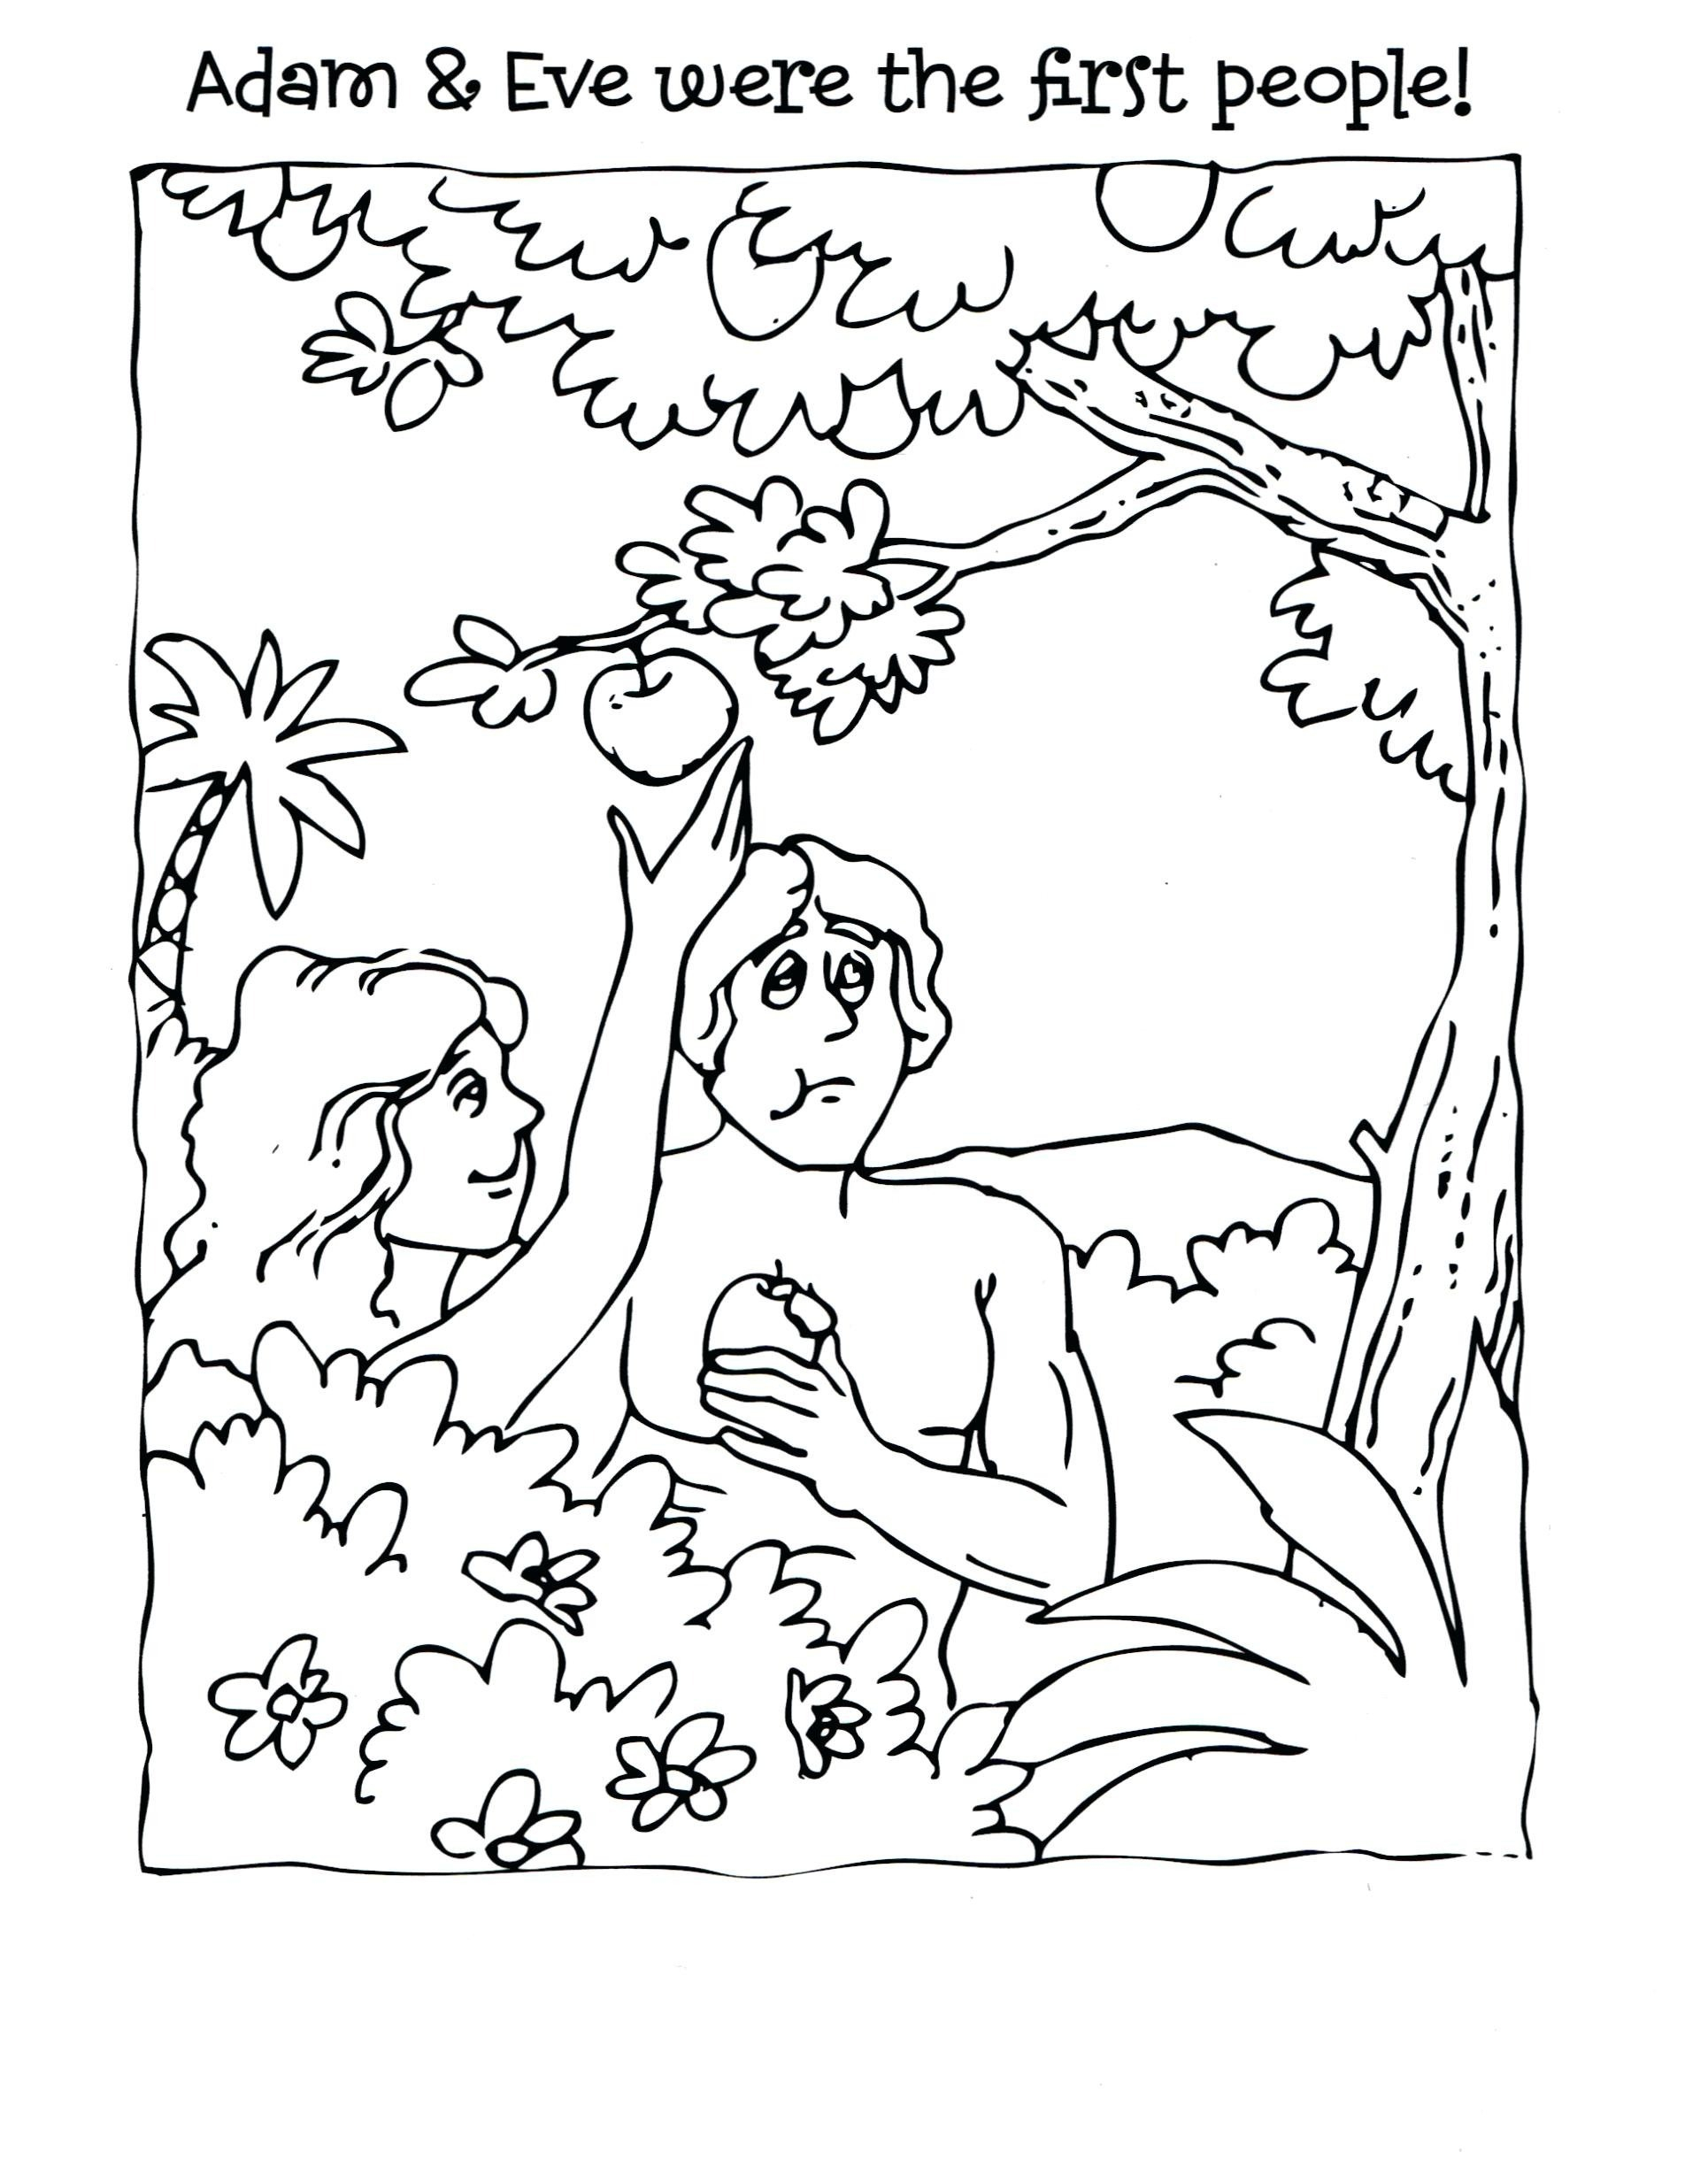 Adam and Eve Coloring Pages Printable  Gallery 15m - Free Download